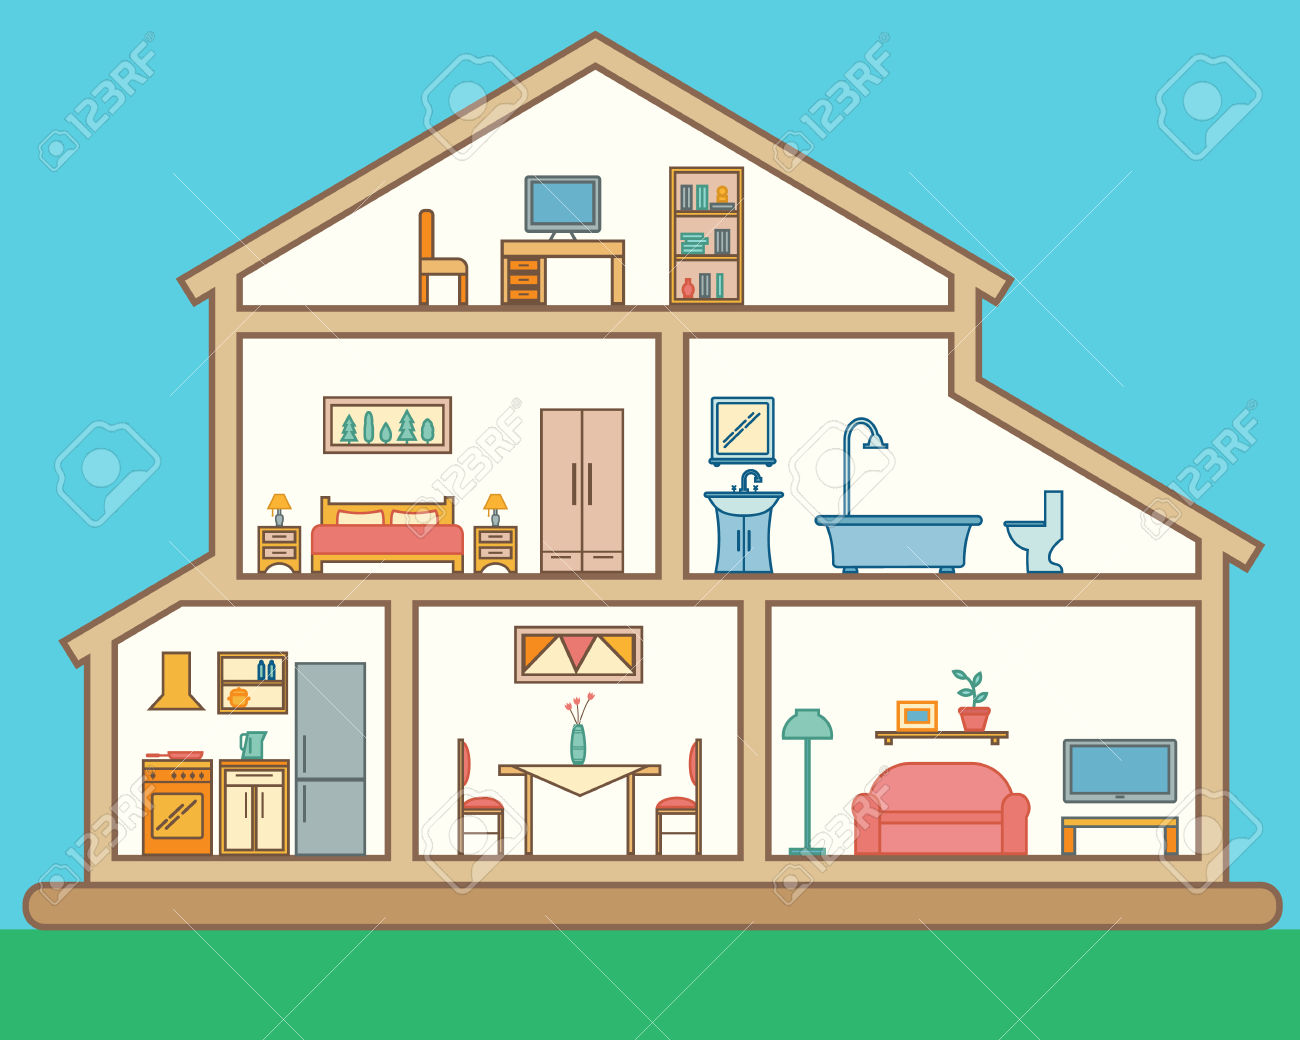 House Rooms Clipart.